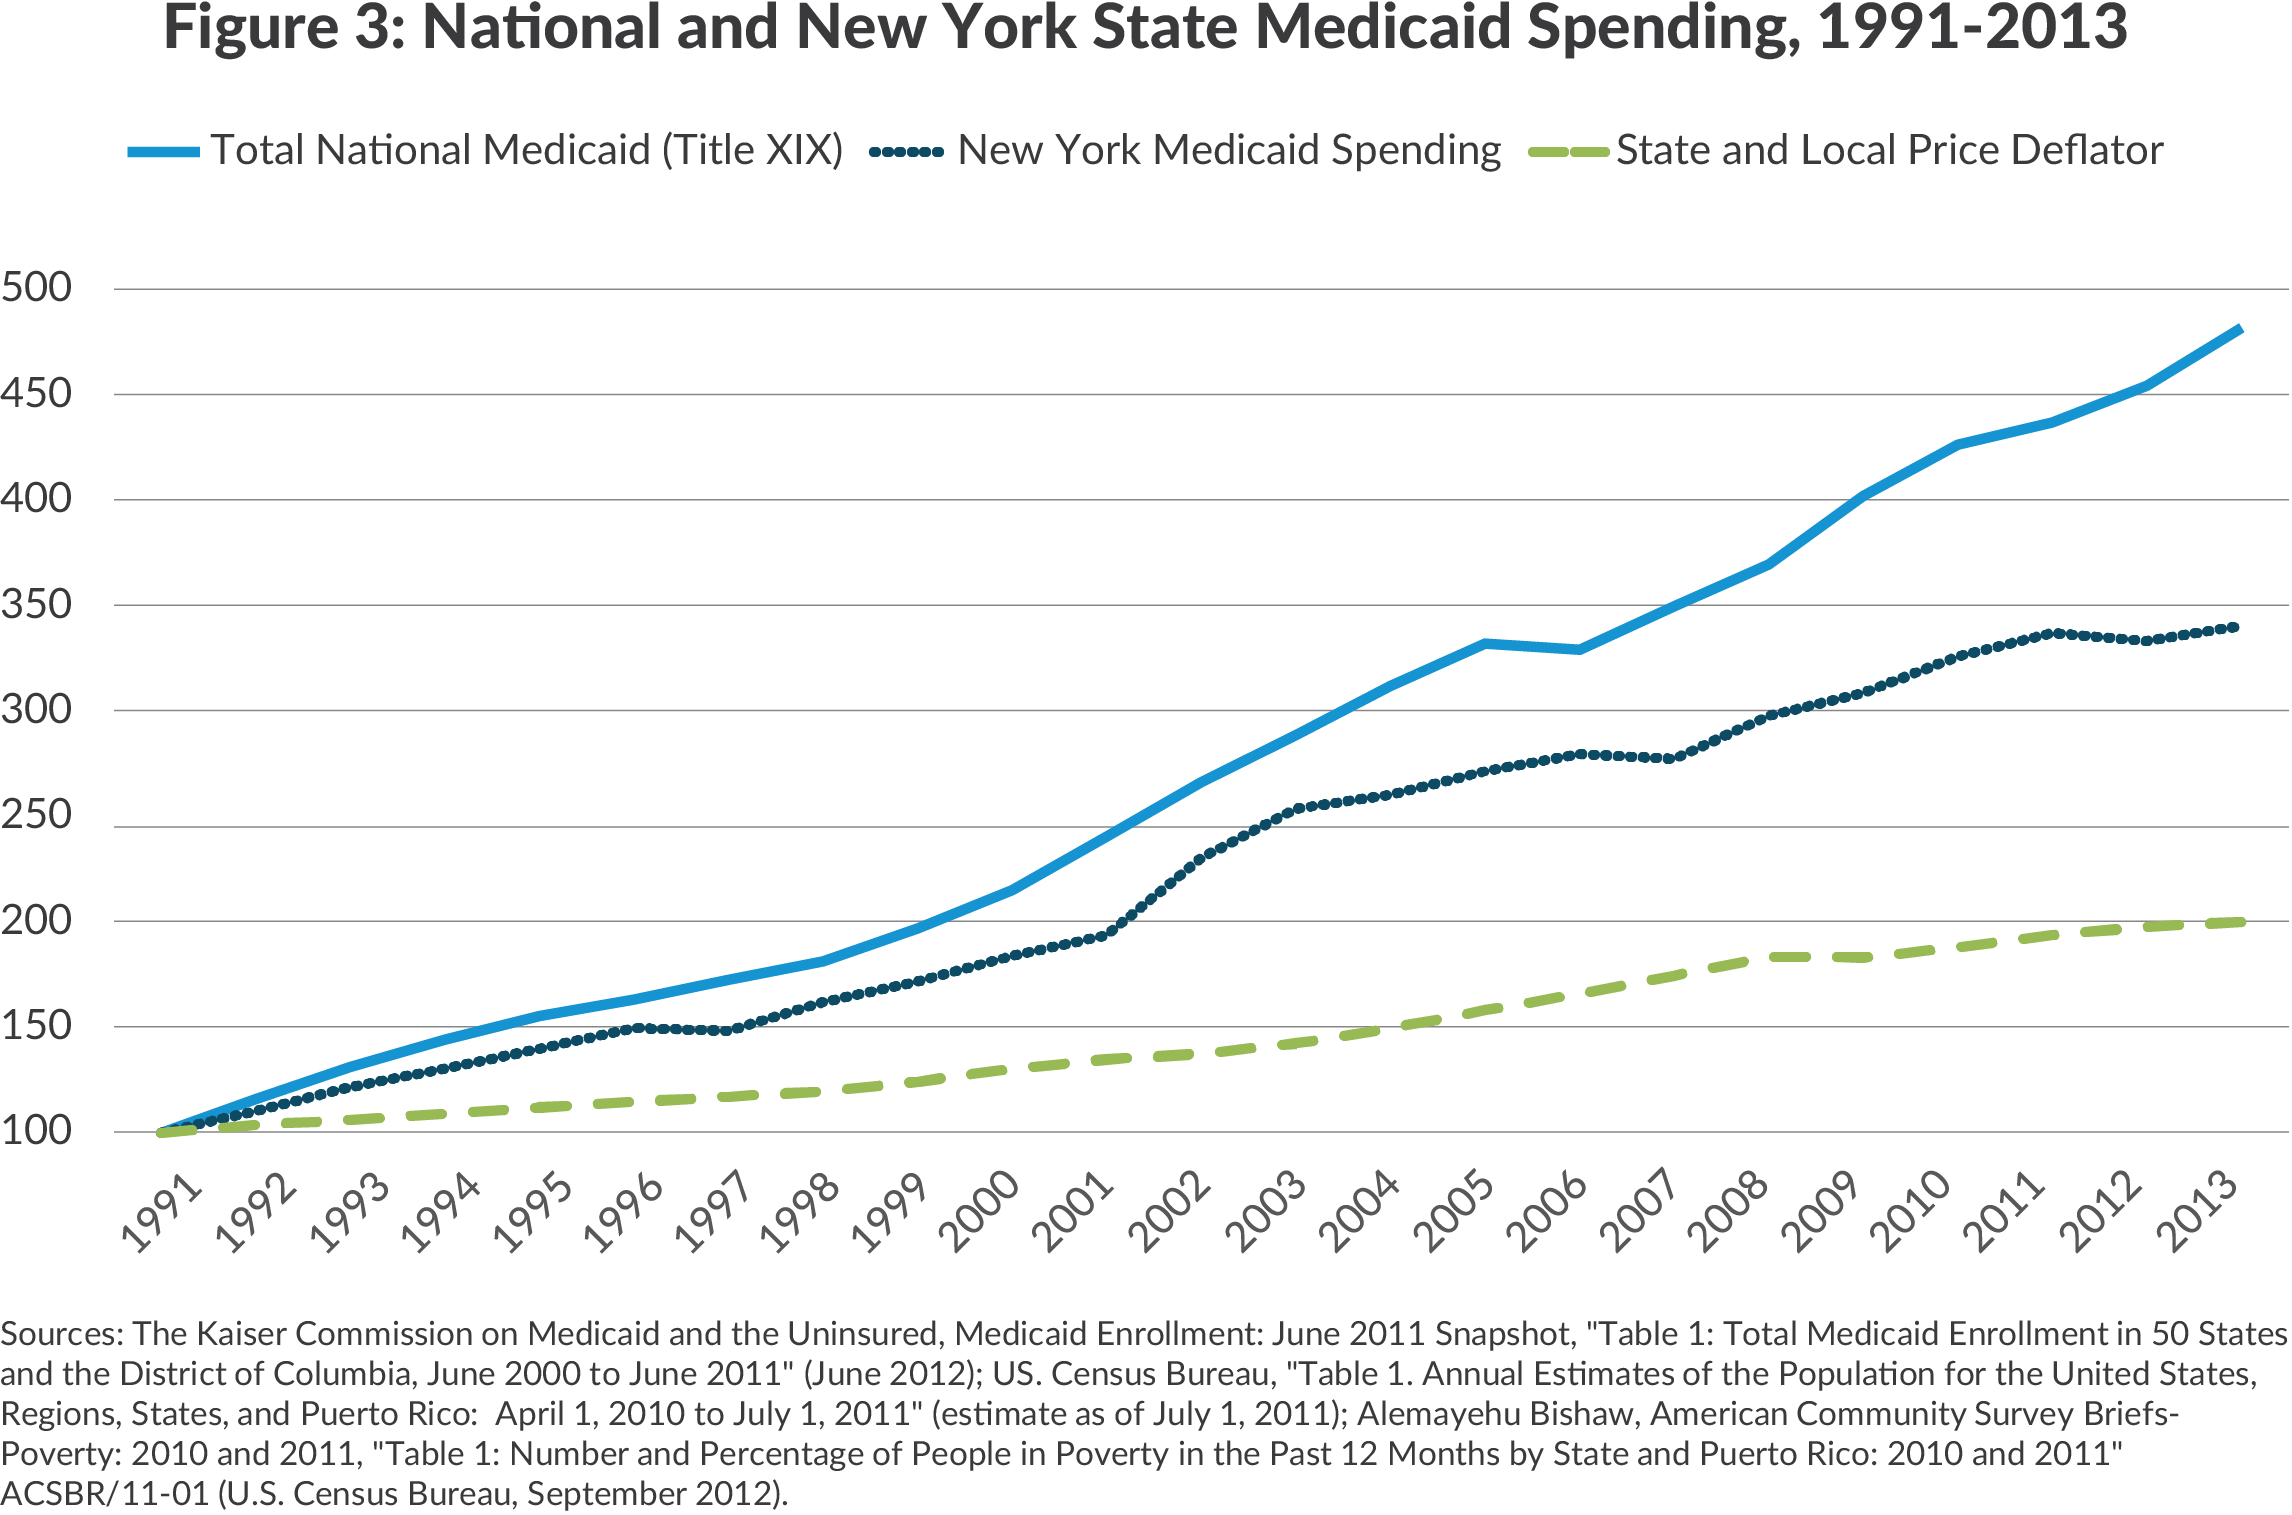 National and Ny medicaid spending, 1991-2013